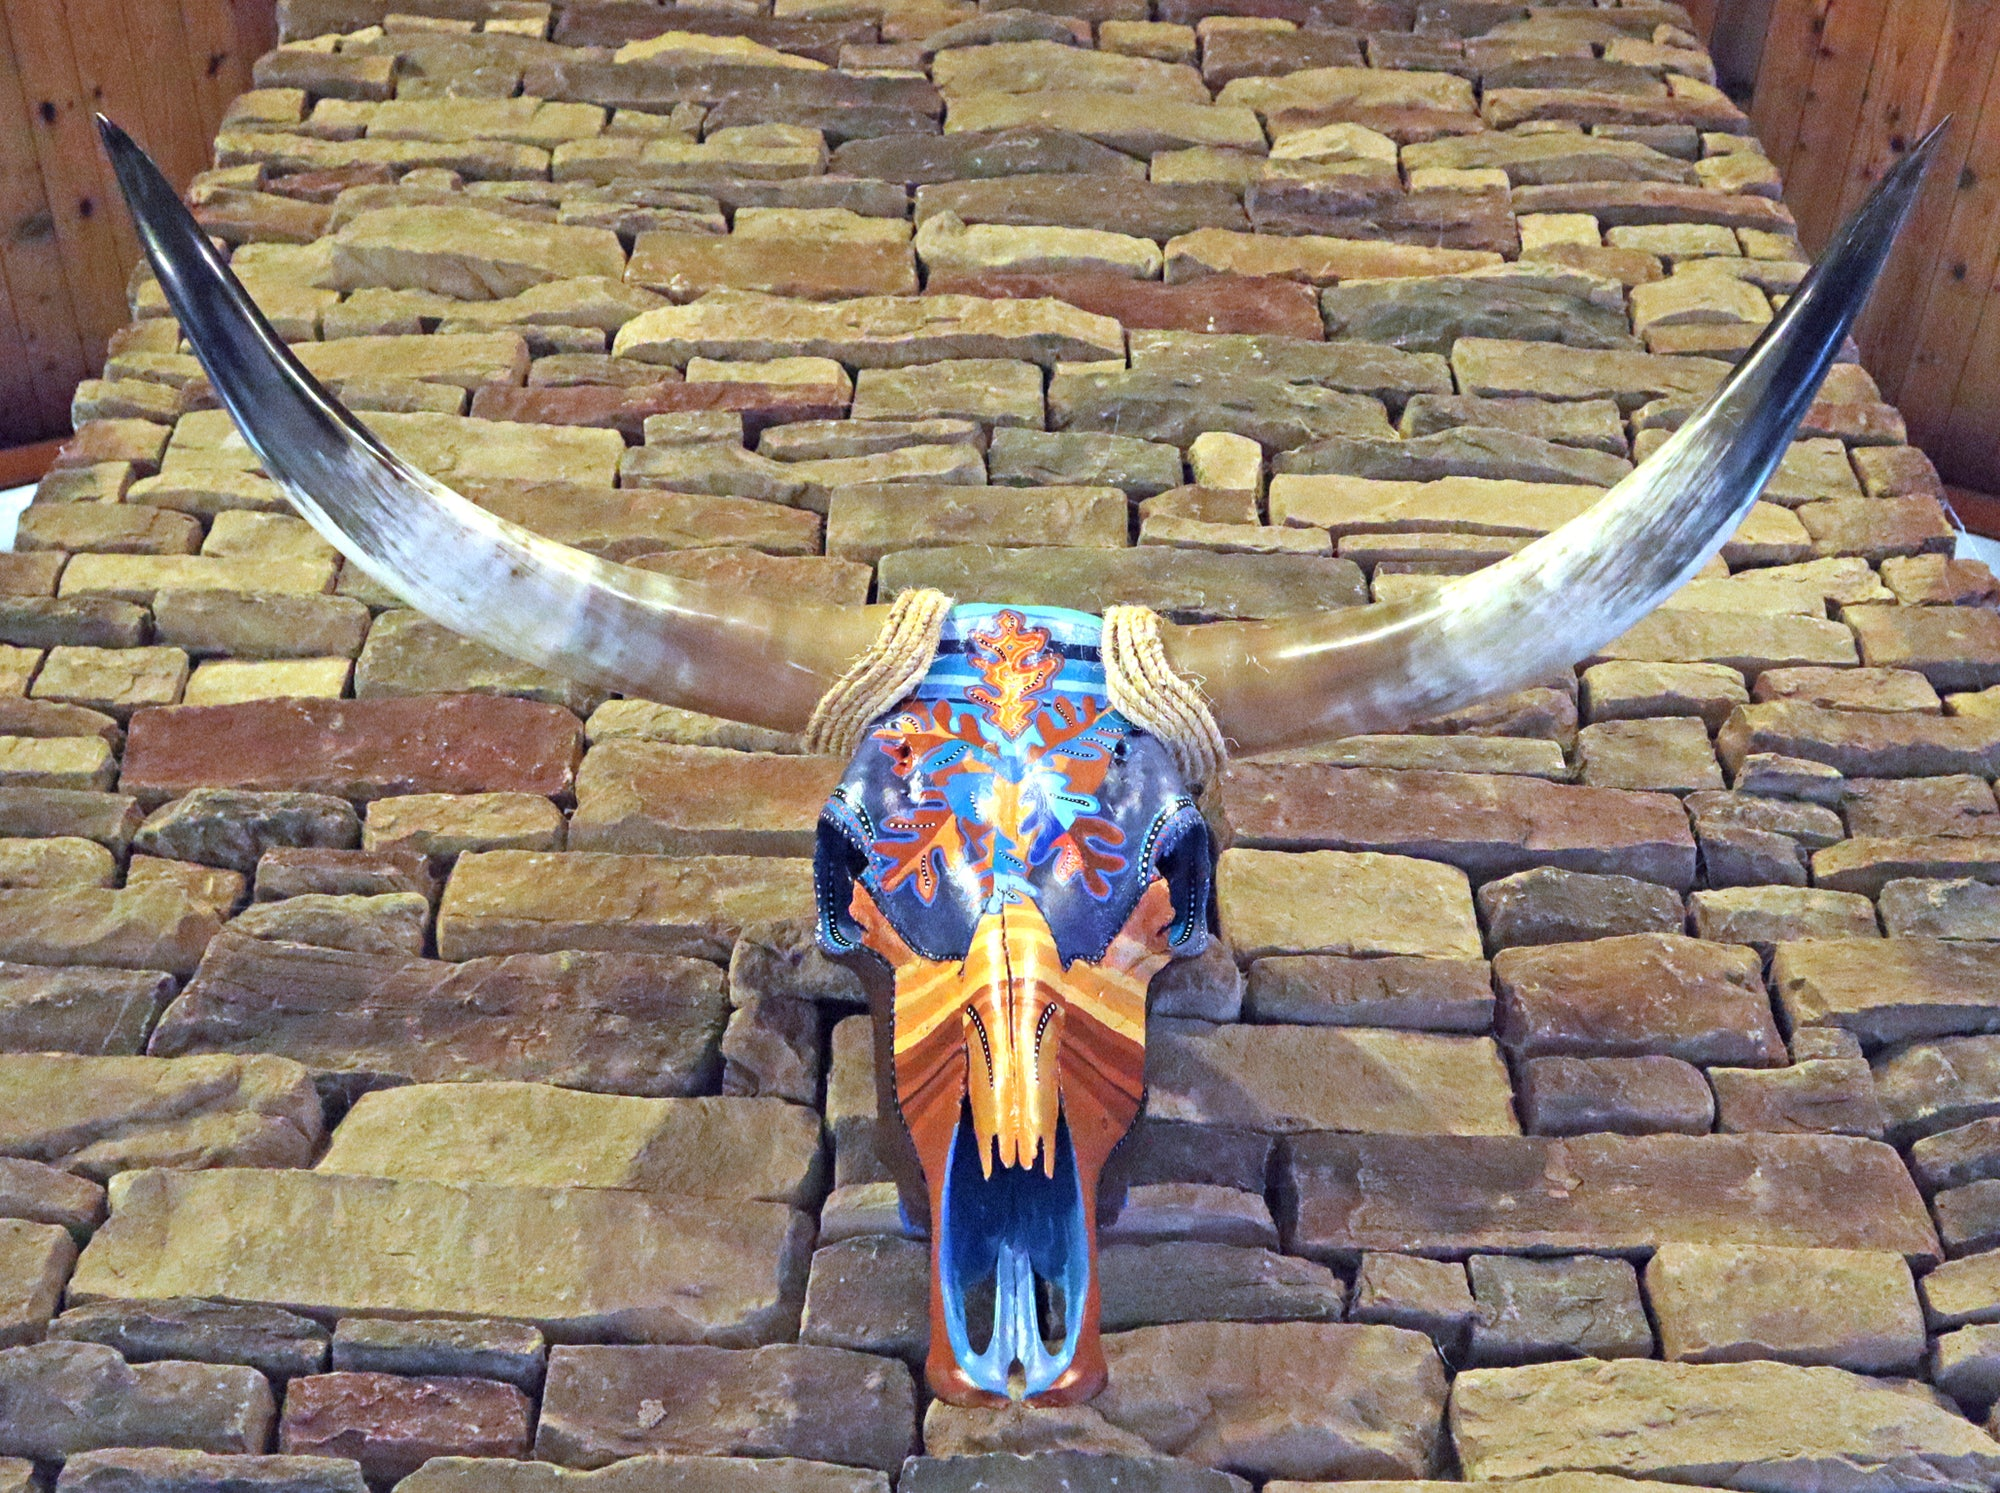 Hand Painted Steer skull. Video.